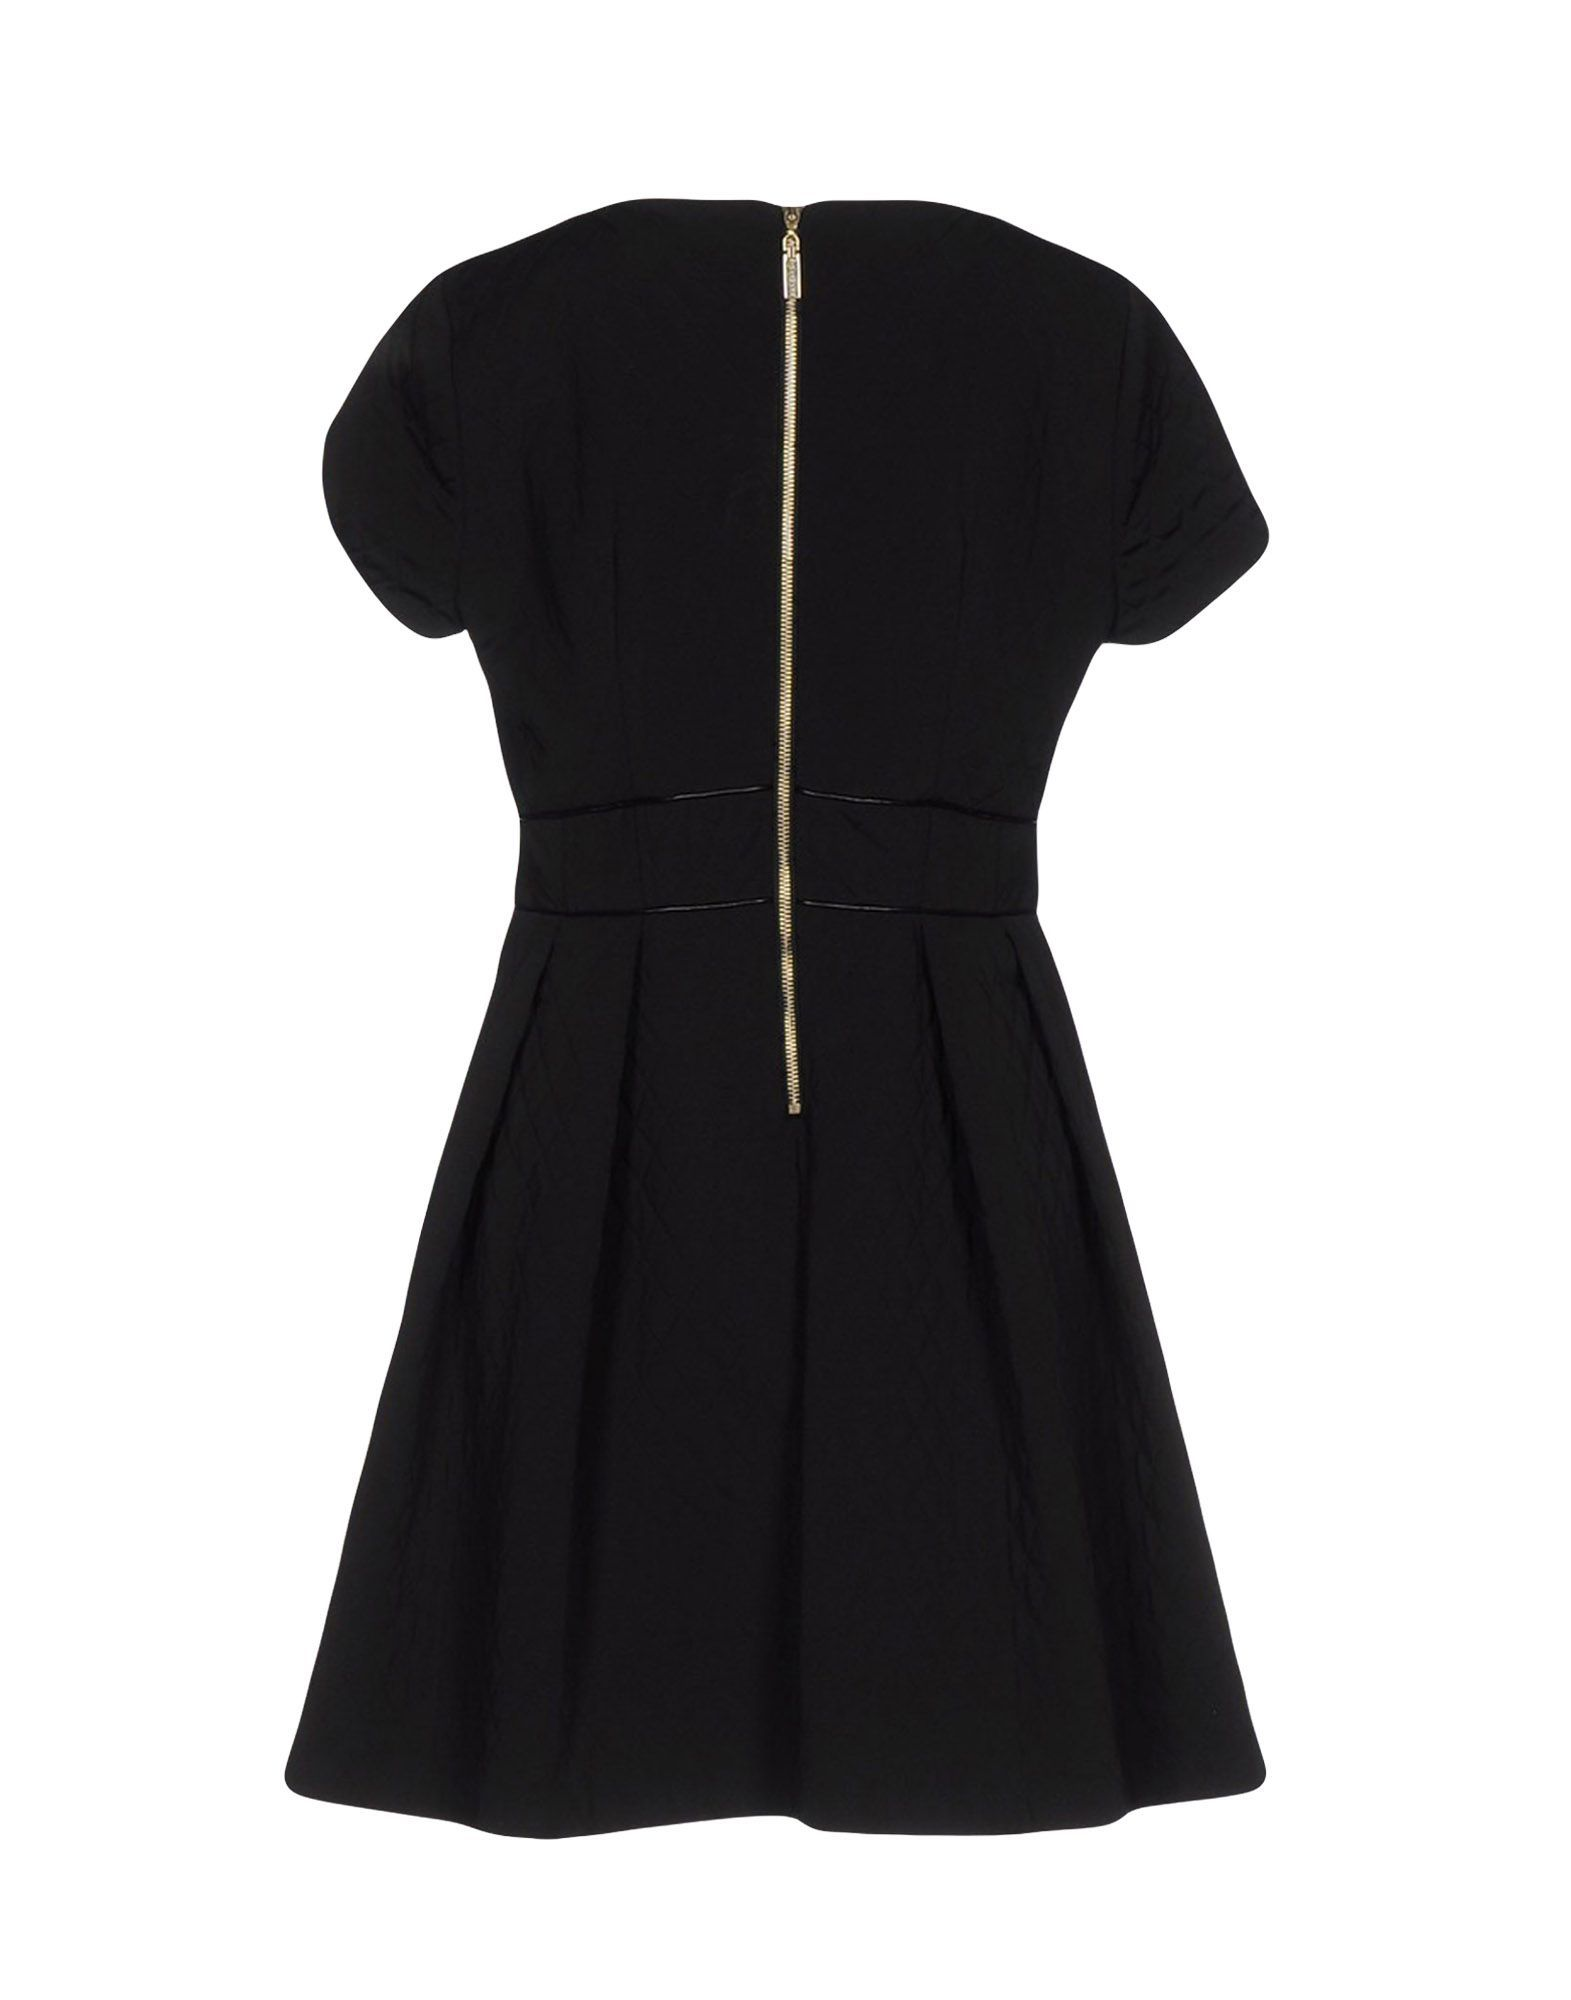 Mangano Black Faux Leather Short Sleeve Dress